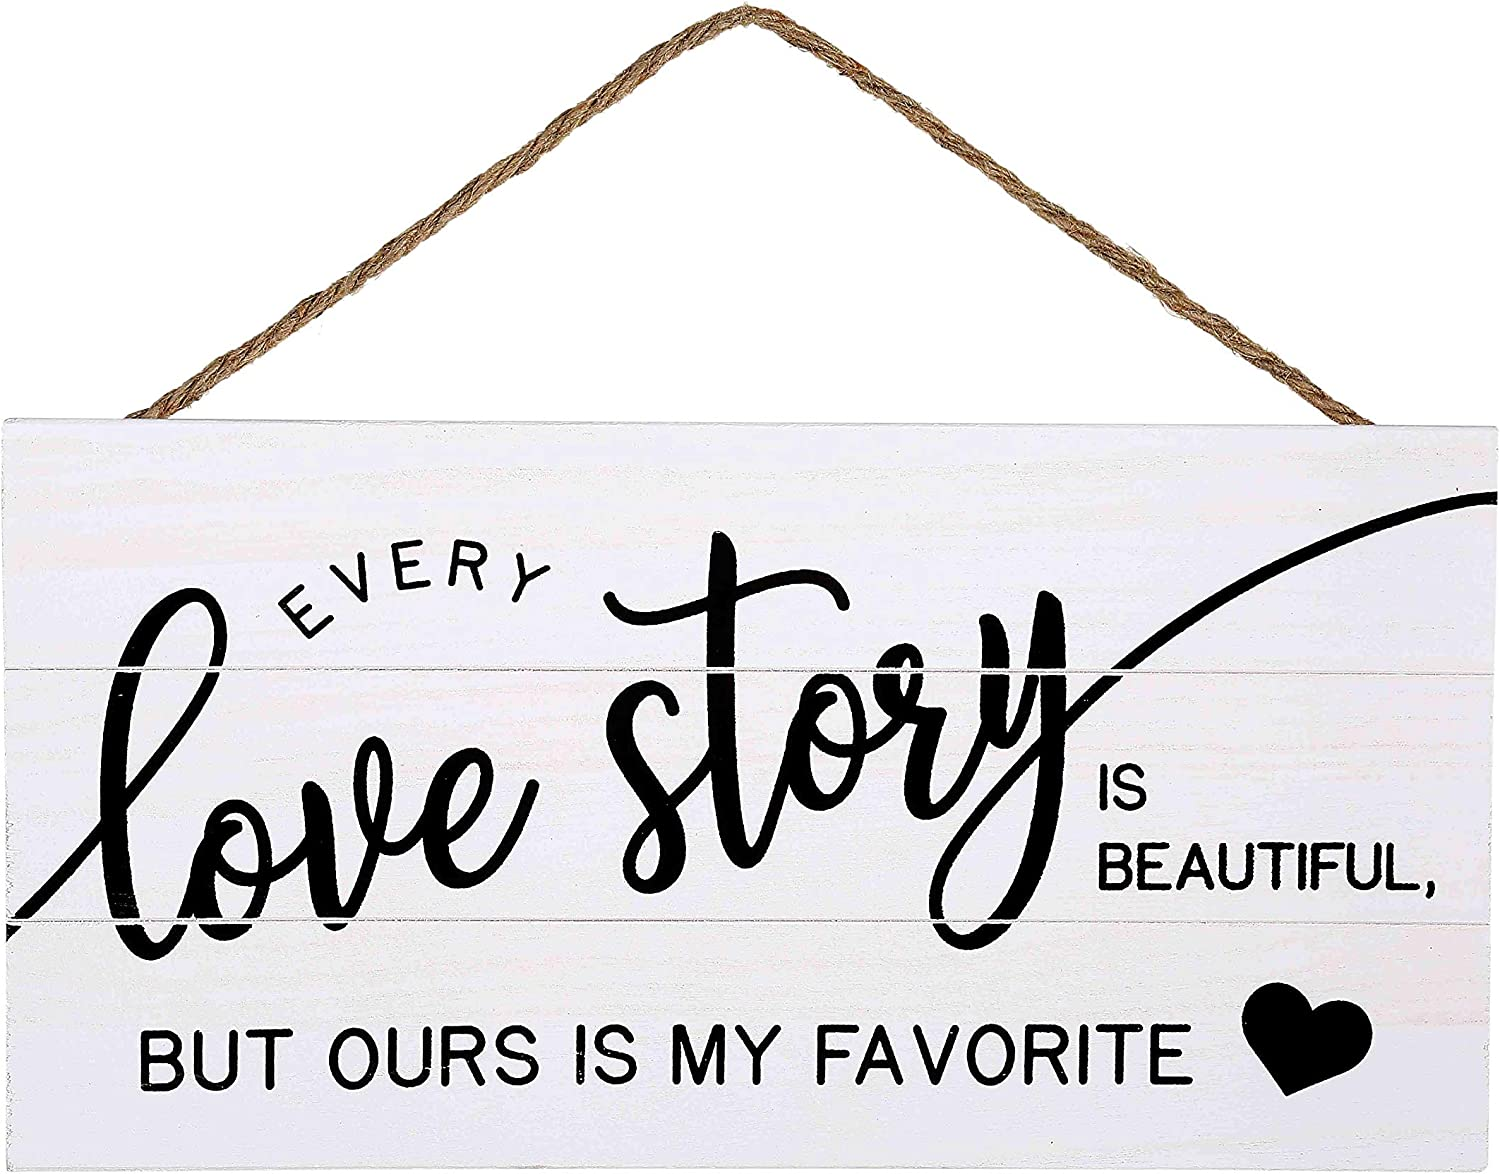 Love Story Wood Plank Hanging Sign for Home Decor (13.75 x 6.9 Inches with White Background)